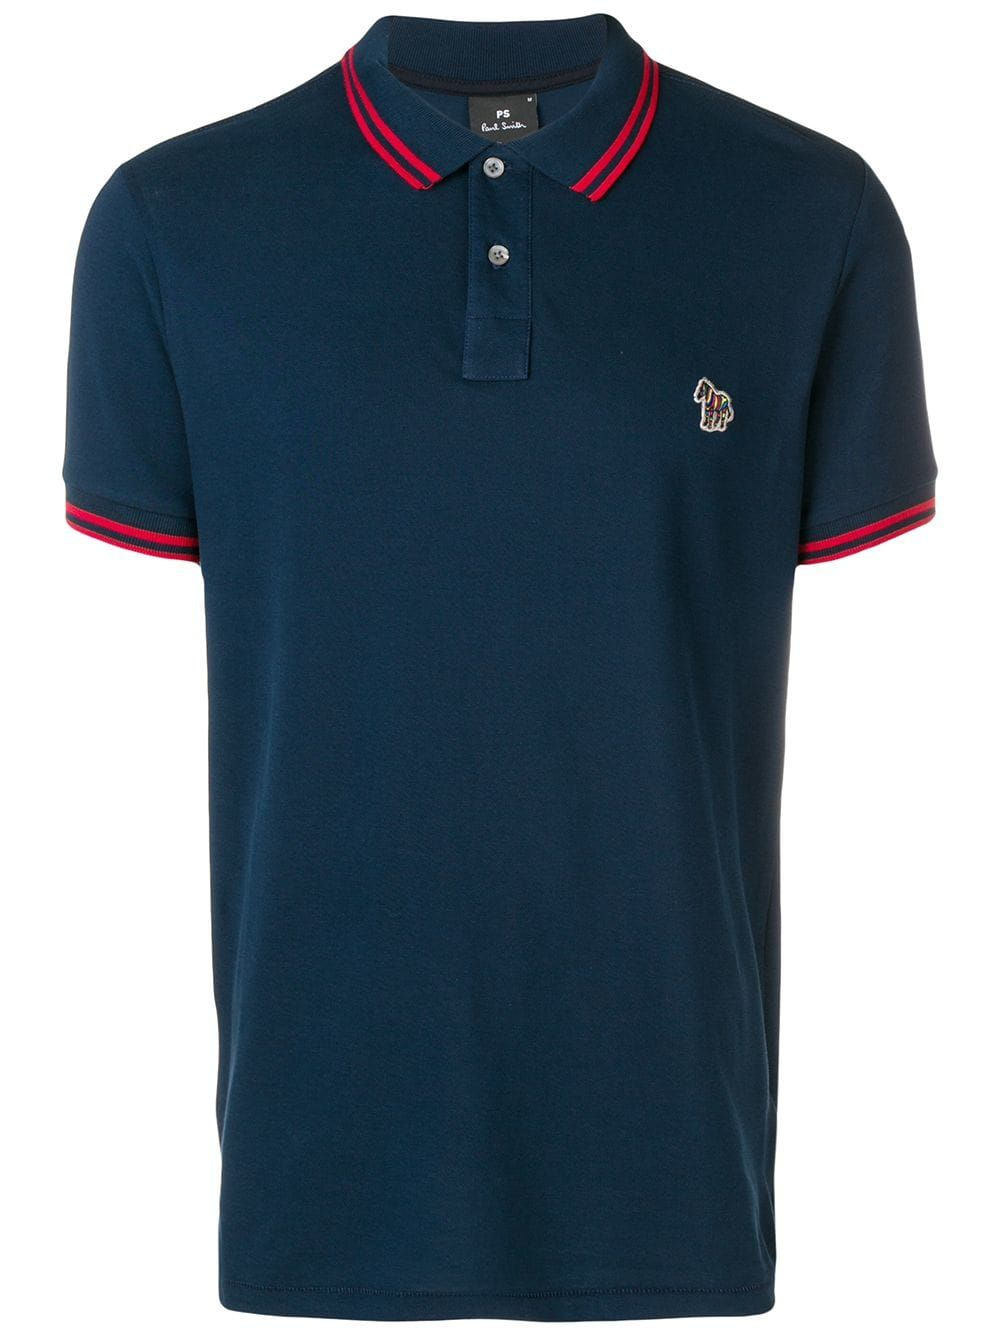 PS BY PAUL SMITH PS BY PAUL SMITH ZEBRA LOGO POLO SHIRT - BLUE.   psbypaulsmith  cloth 9052d81eee1c